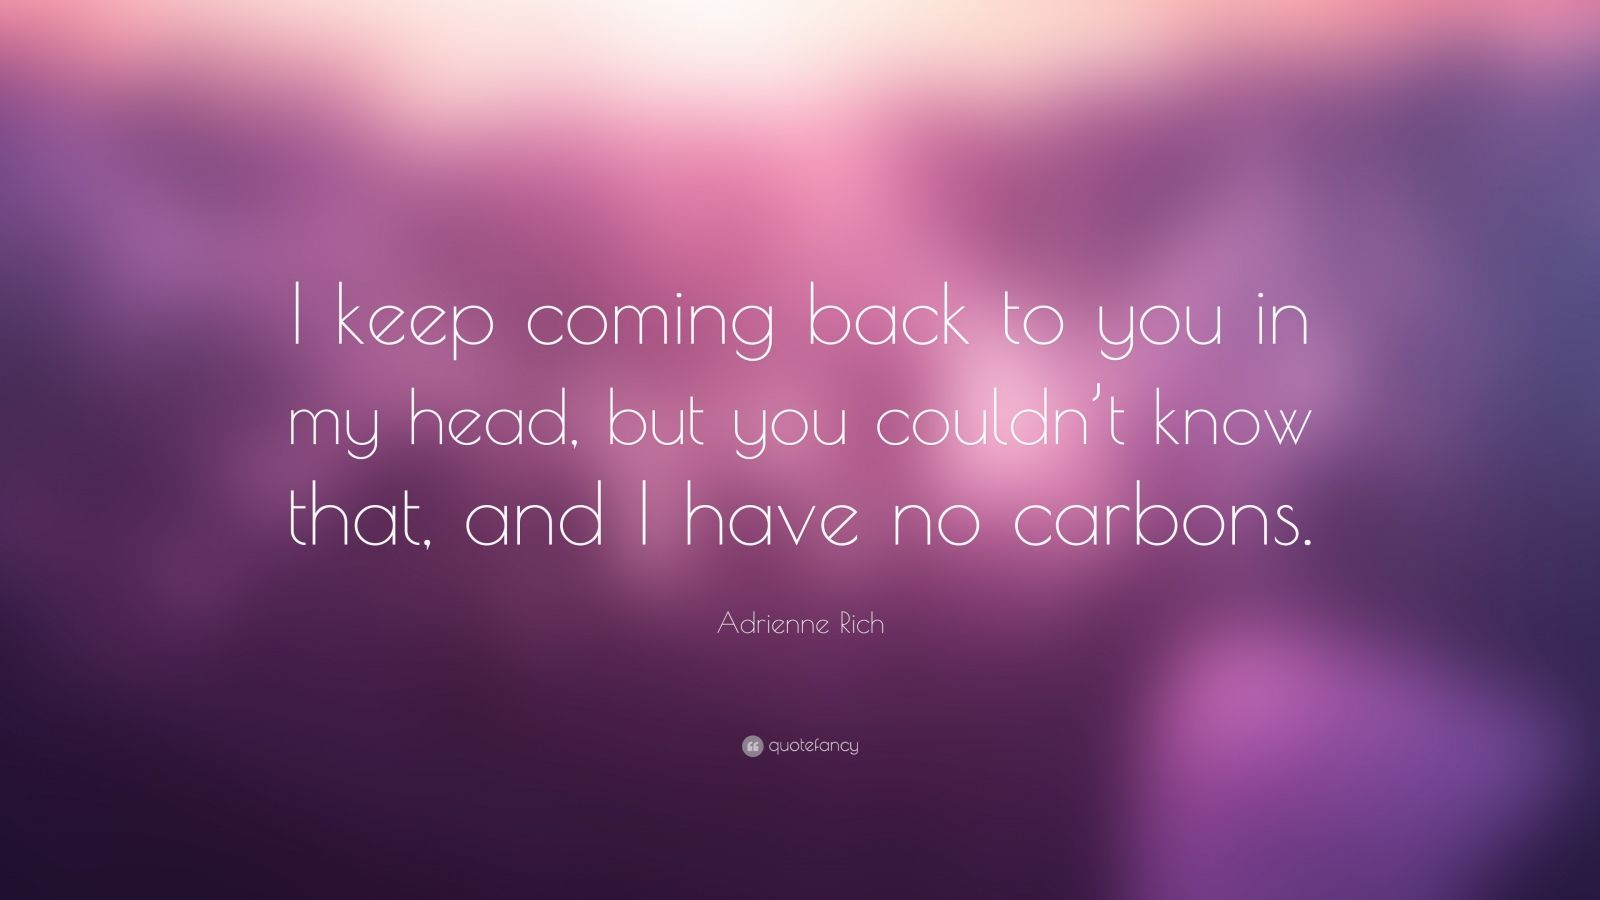 """Adrienne Rich Quote: """"I keep coming back to you in my head, but you couldn't know that, and I have no carbons."""""""